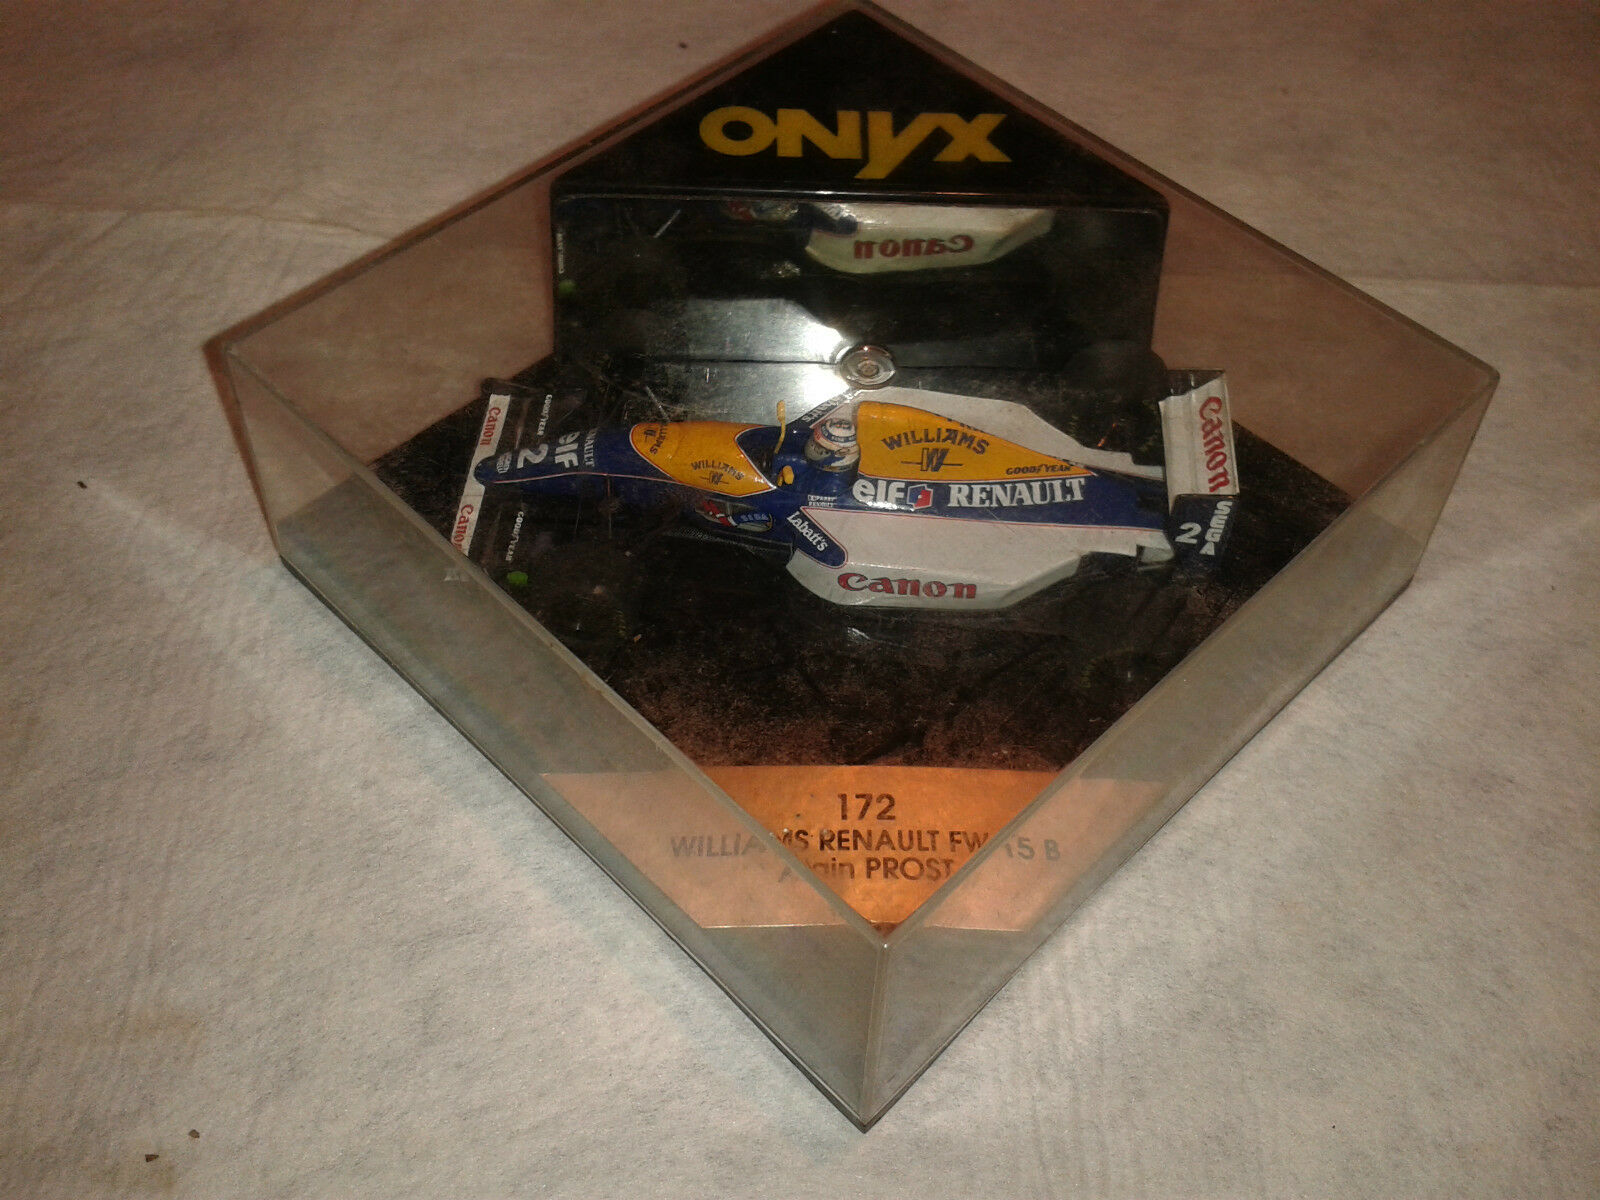 ONYX 172 172 172 WILLIAMS RENAULT FW 15 B ALAIN PROST CAR 1 43 MINIATURE COLLECTOR 3b1c9d